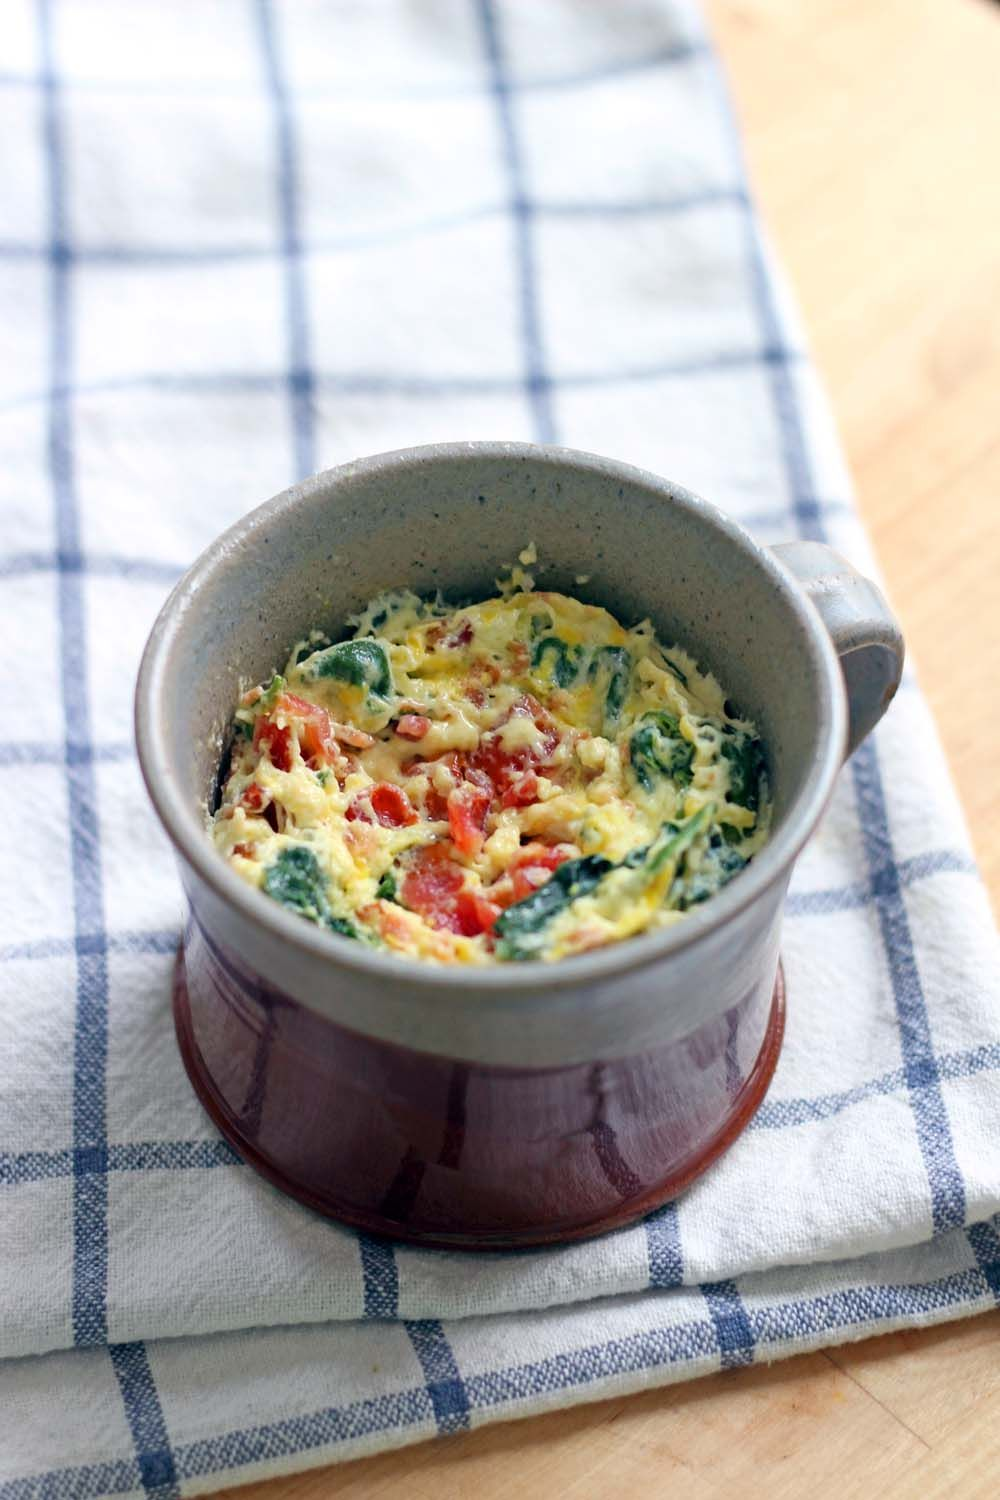 55 Easy Healthy Breakfast Ideas Recipes For Quick And Healthy